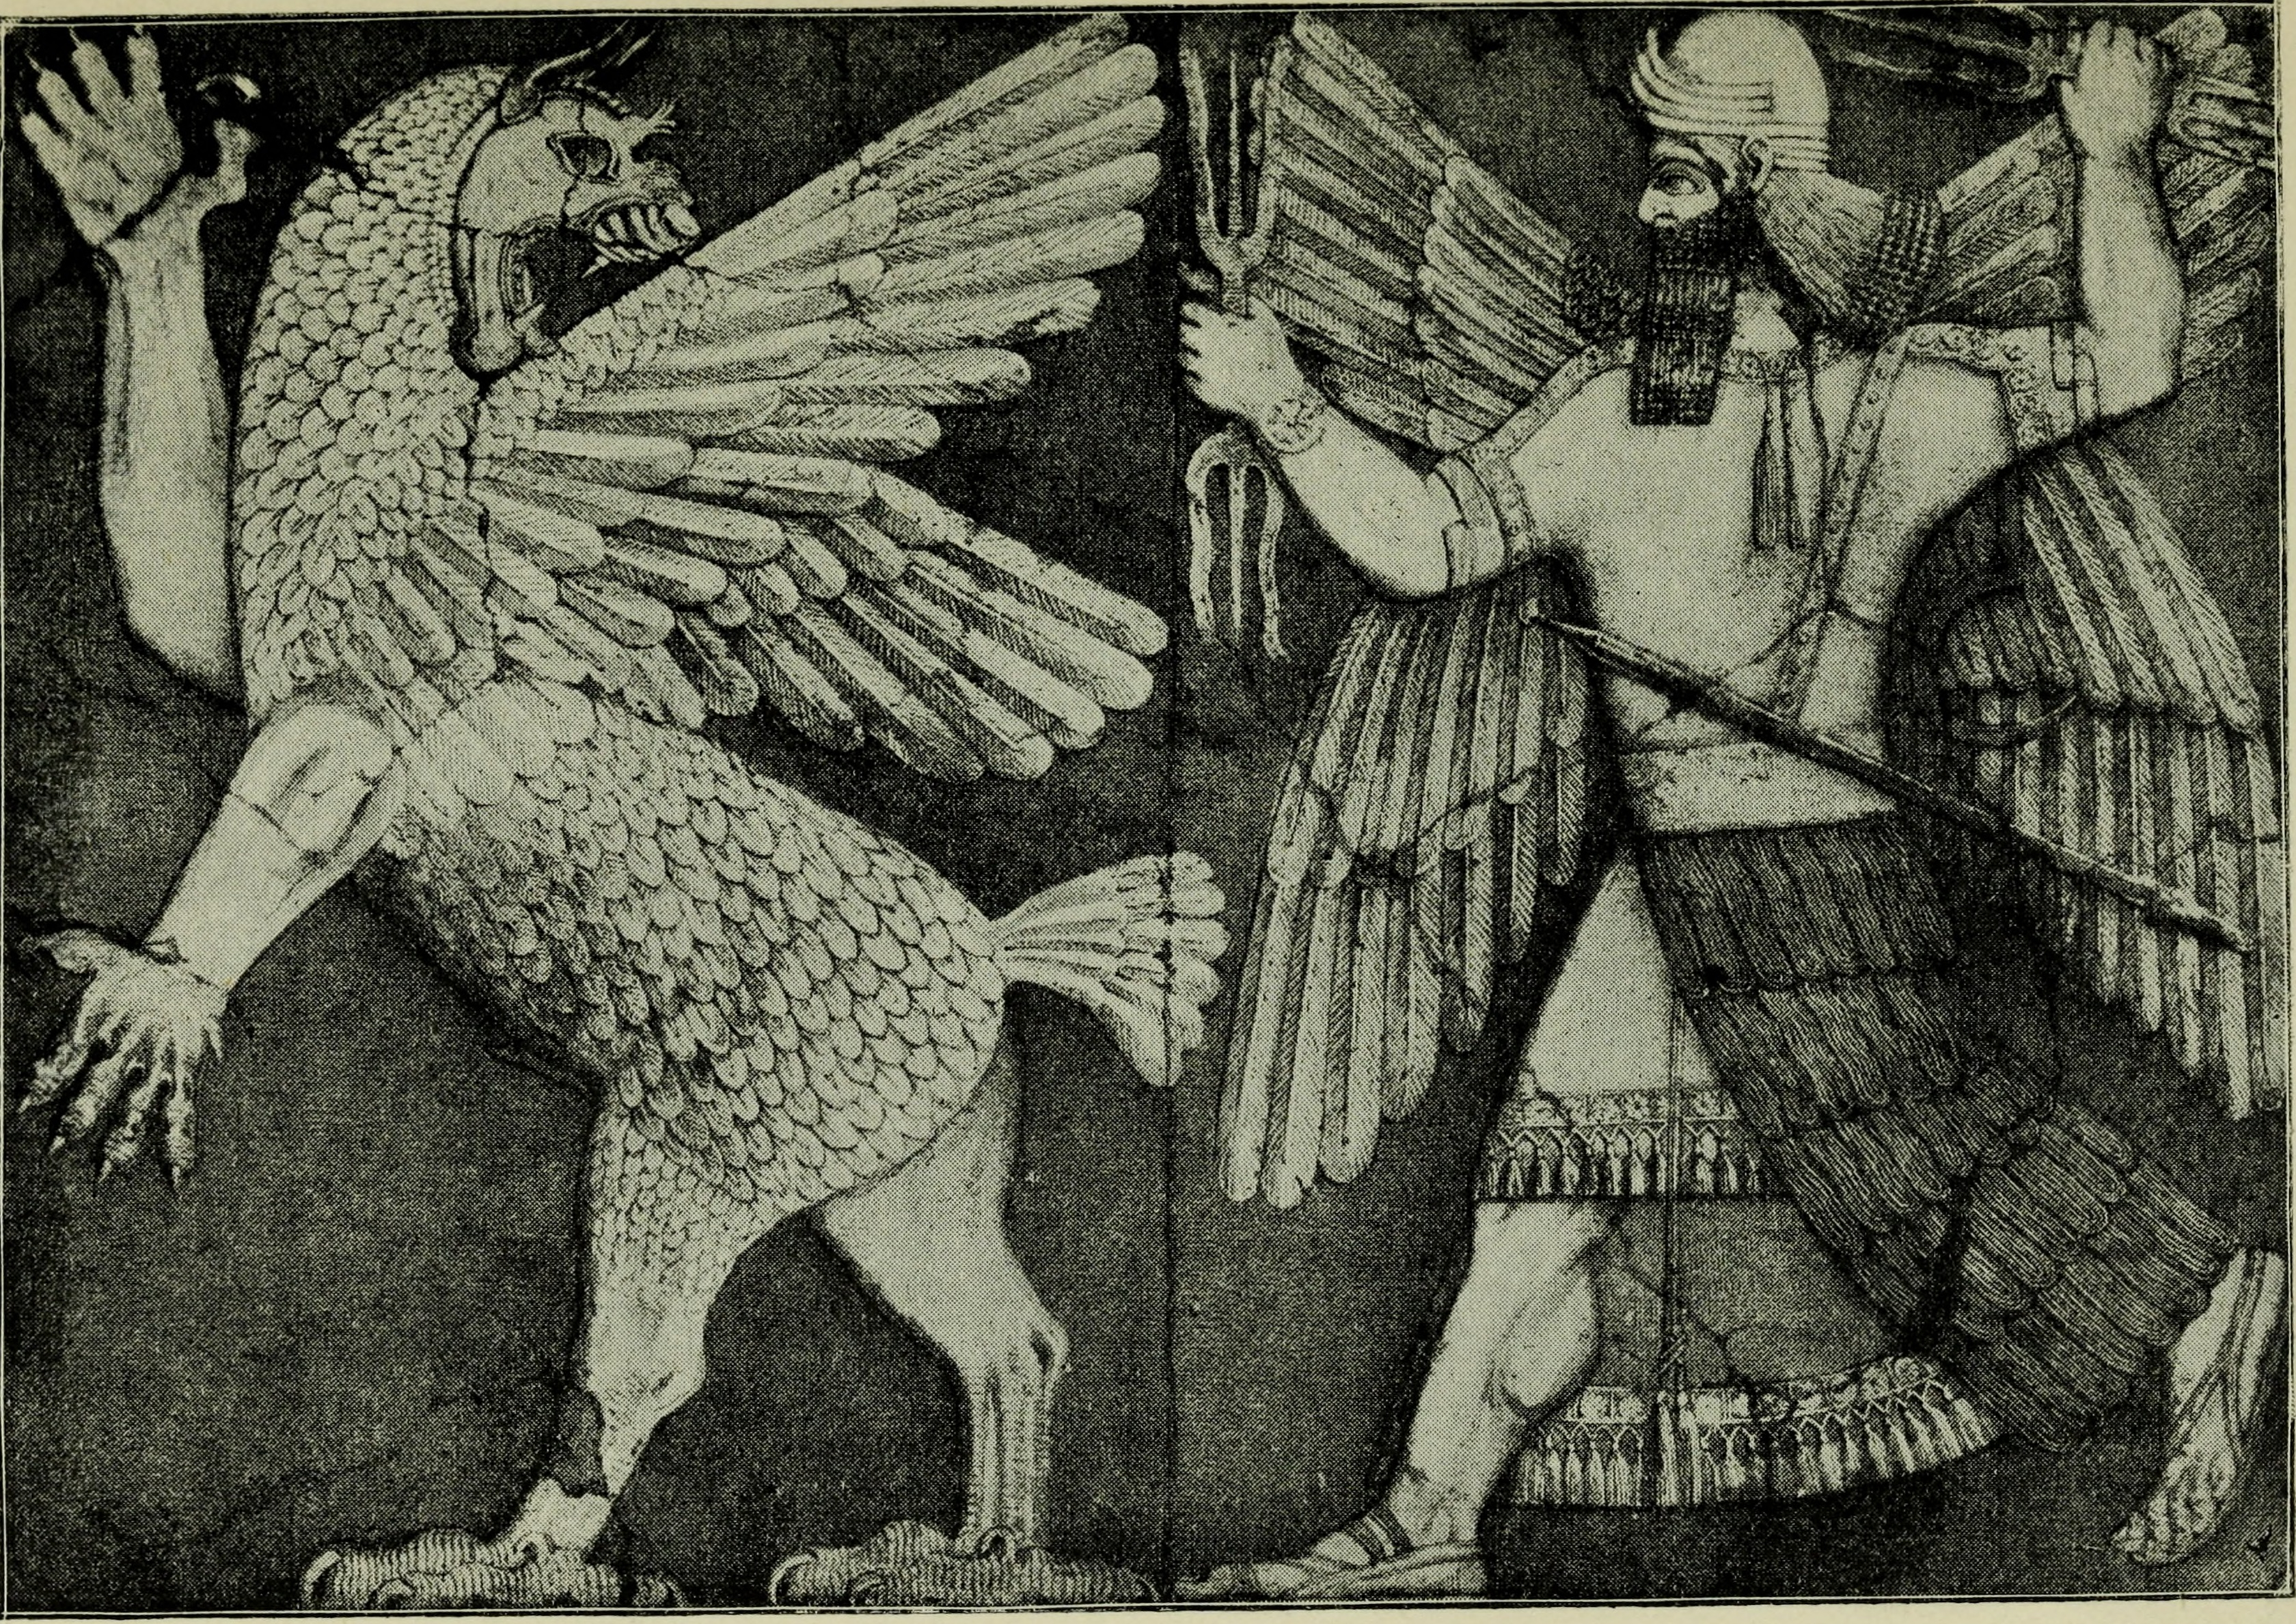 Babylonian_religion_and_mythology_(1899)_(14595850218).jpg